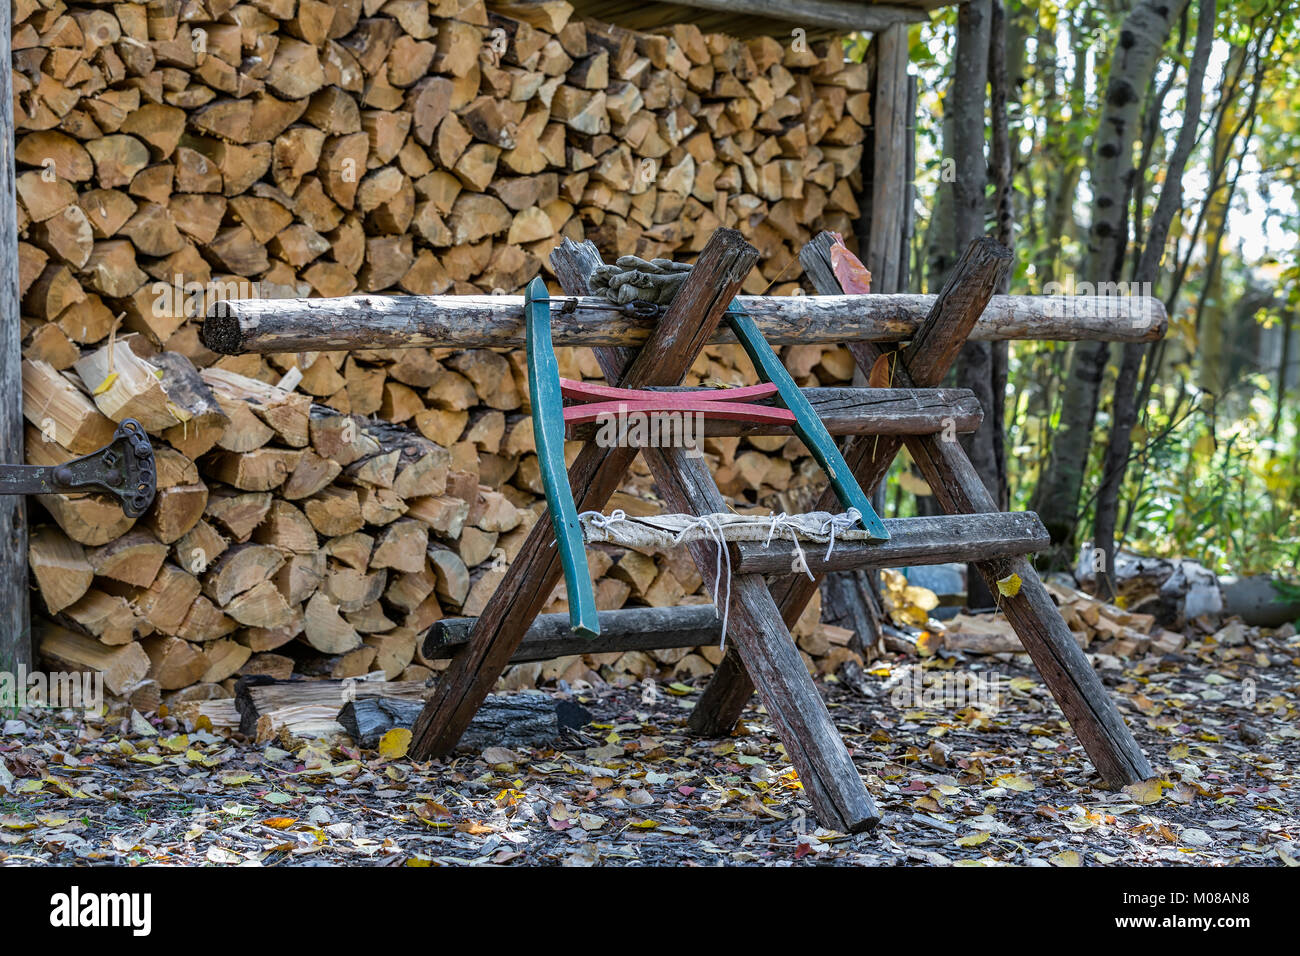 A traditional bow saw or buck saw on a sawbuck or sawhorse, for holding and cutting logs for firewood, Manitoba, - Stock Image